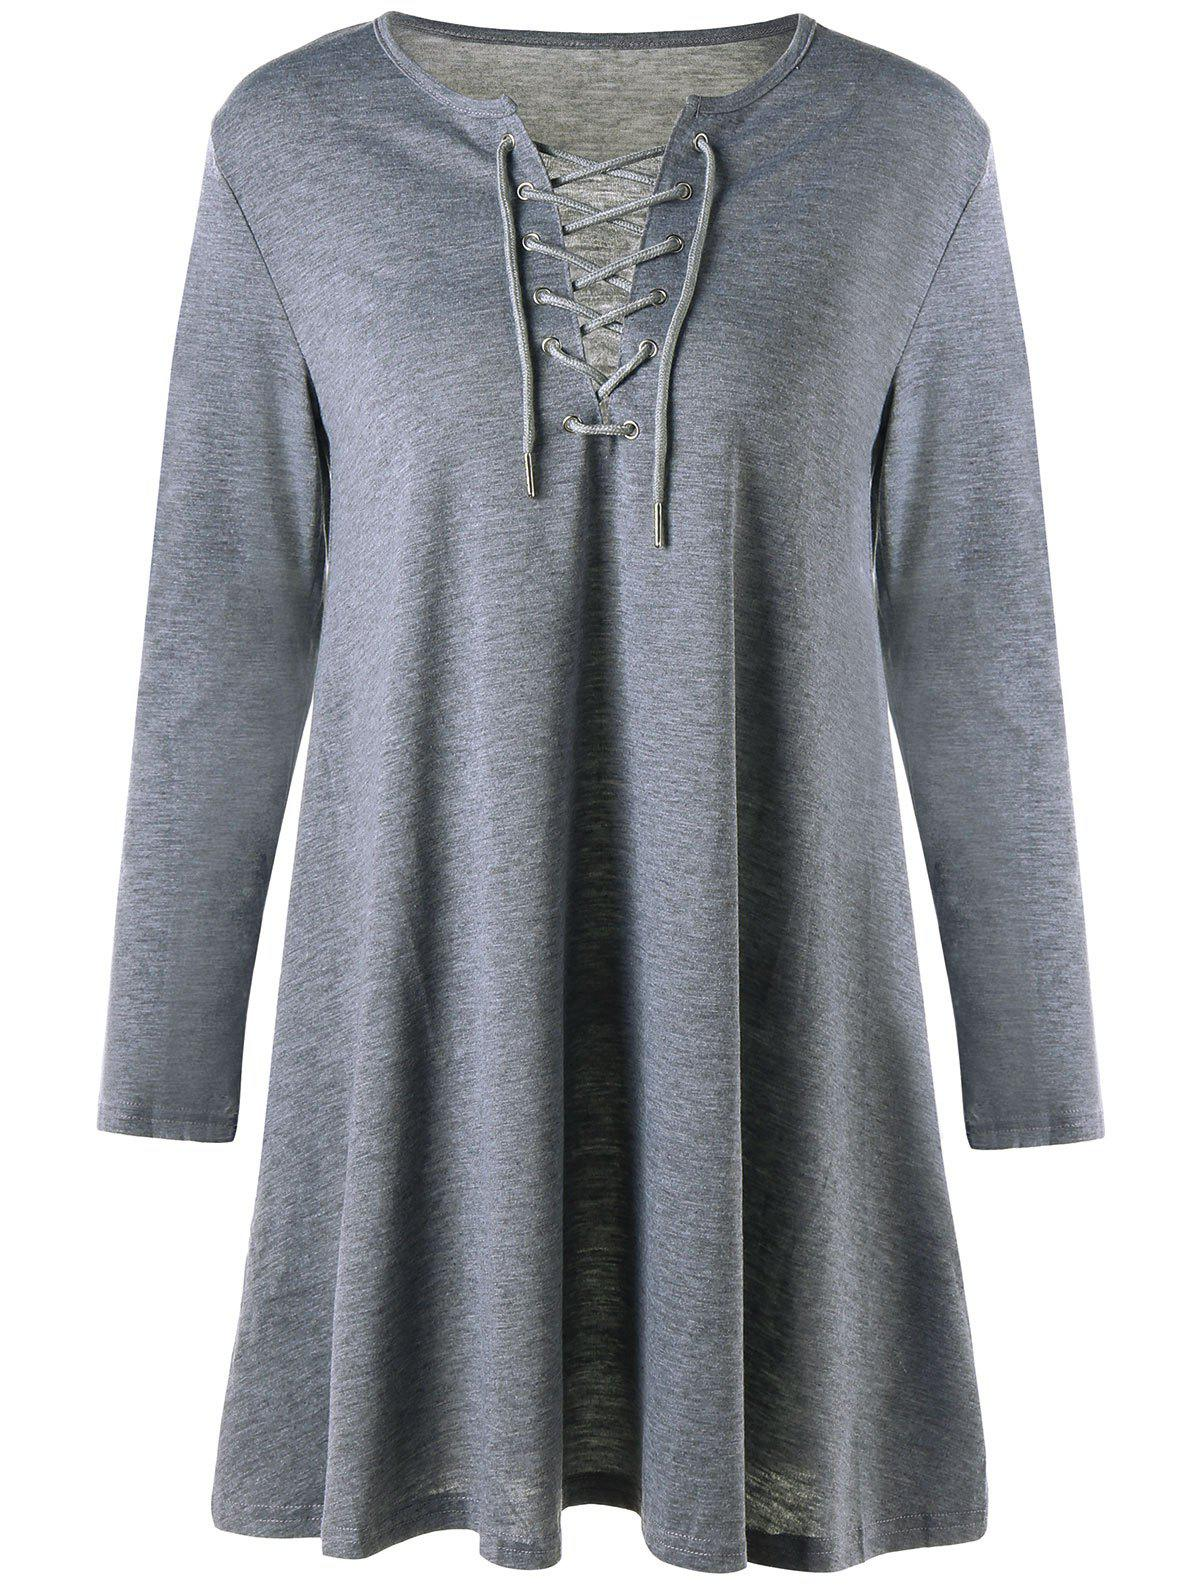 Lattice Long Sleeve Mini Shift Dress - GRAY XL